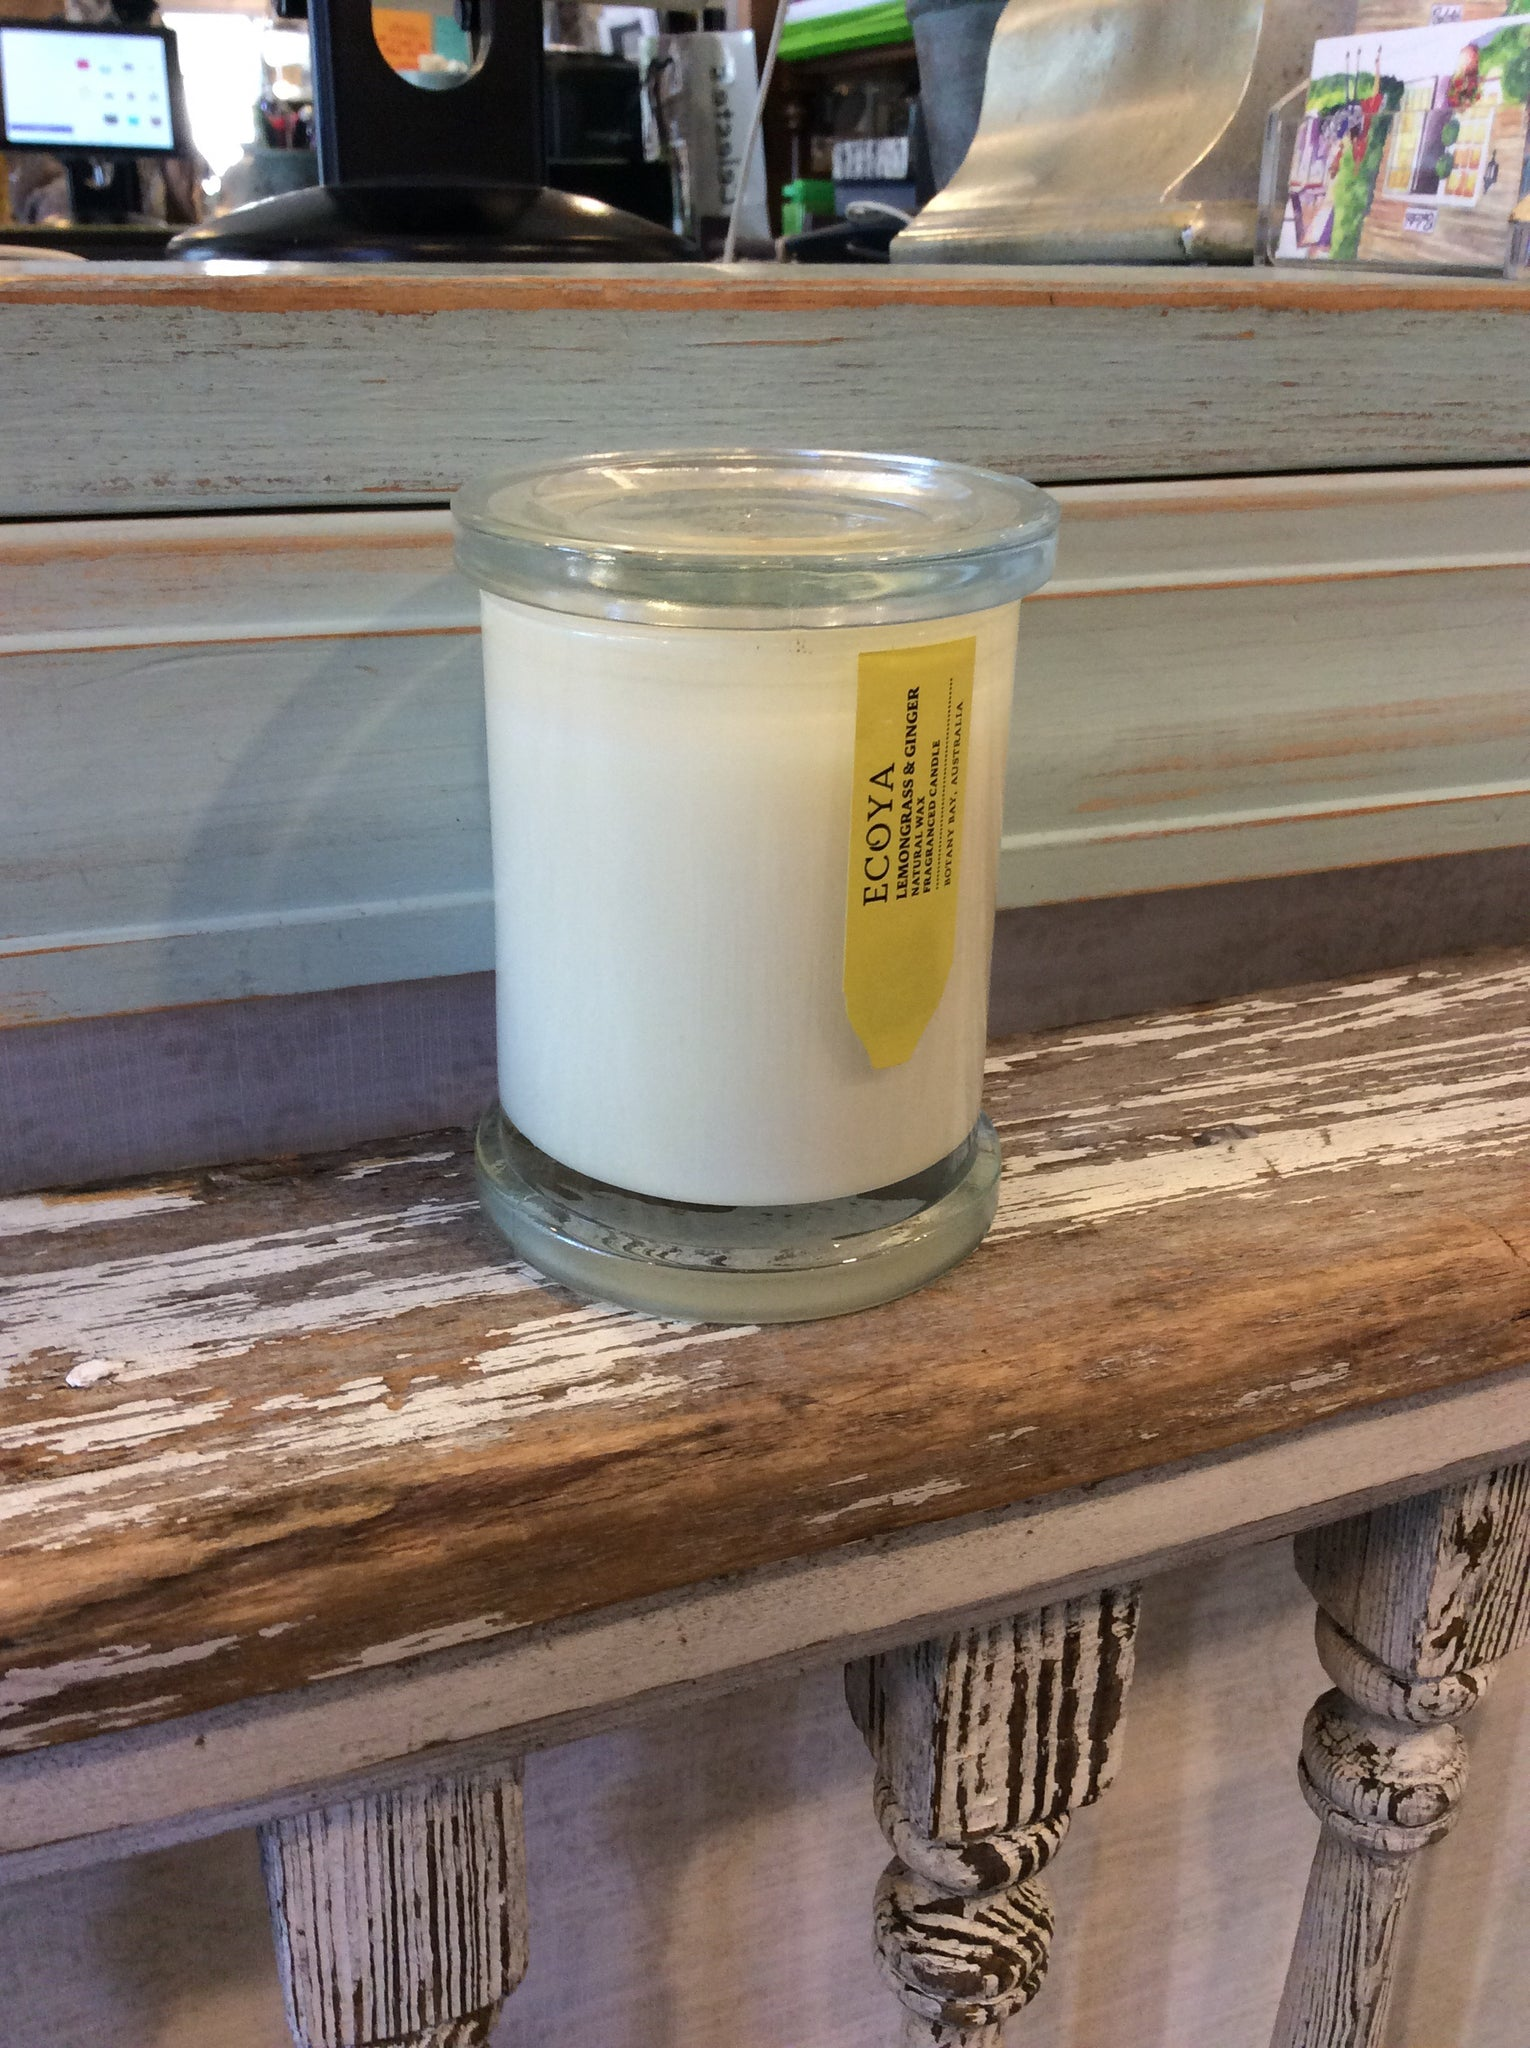 Ecoya Lemongrass and Ginger Natural Wax Fragranced Candle